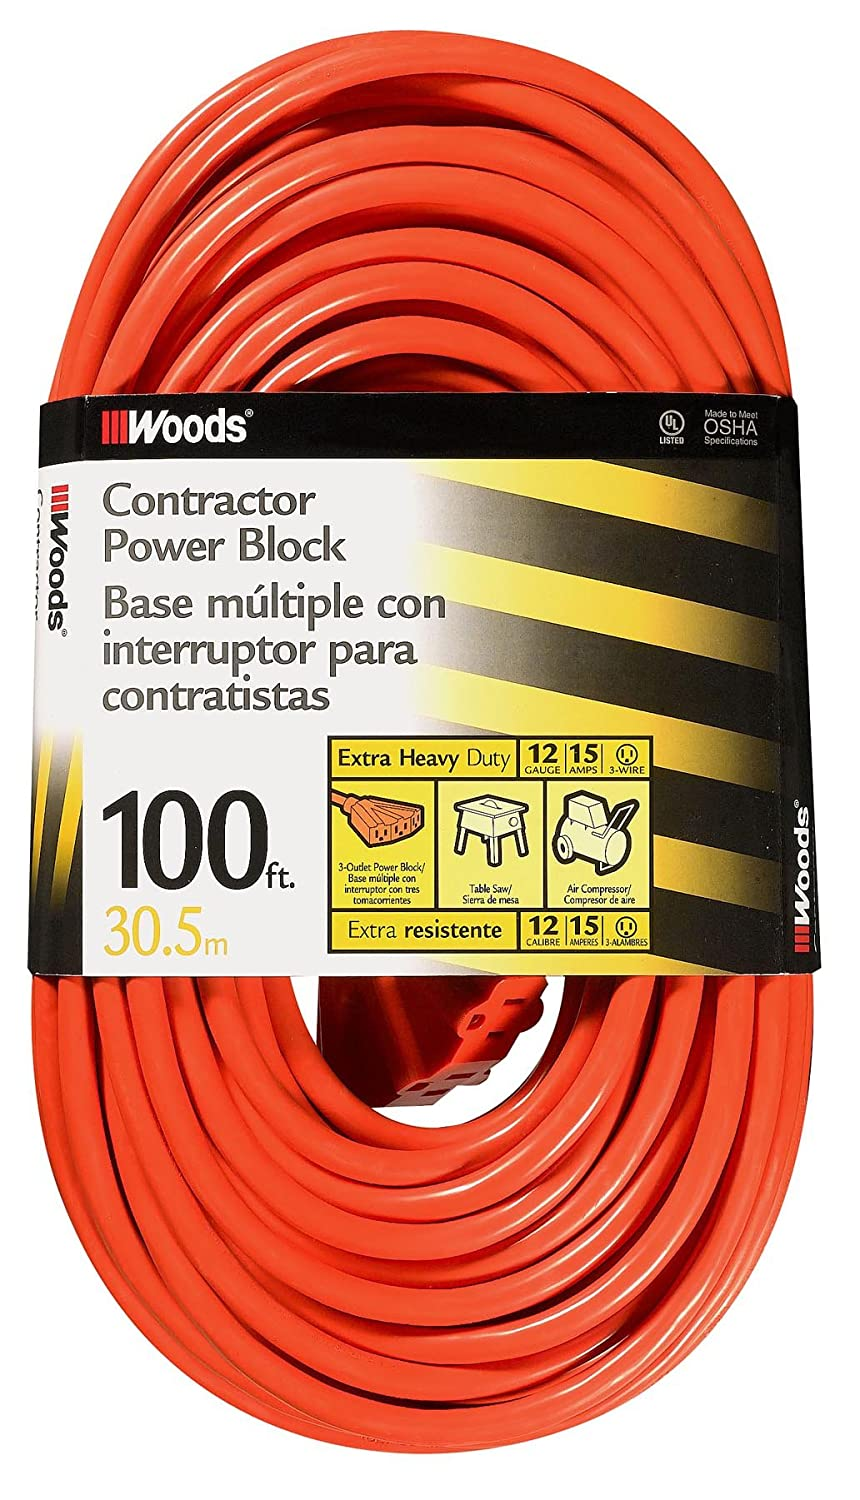 Woods 990824 12/3 Outdoor Multi-Outlet Extension Cord, 2-Foot, Orange - - Amazon.com